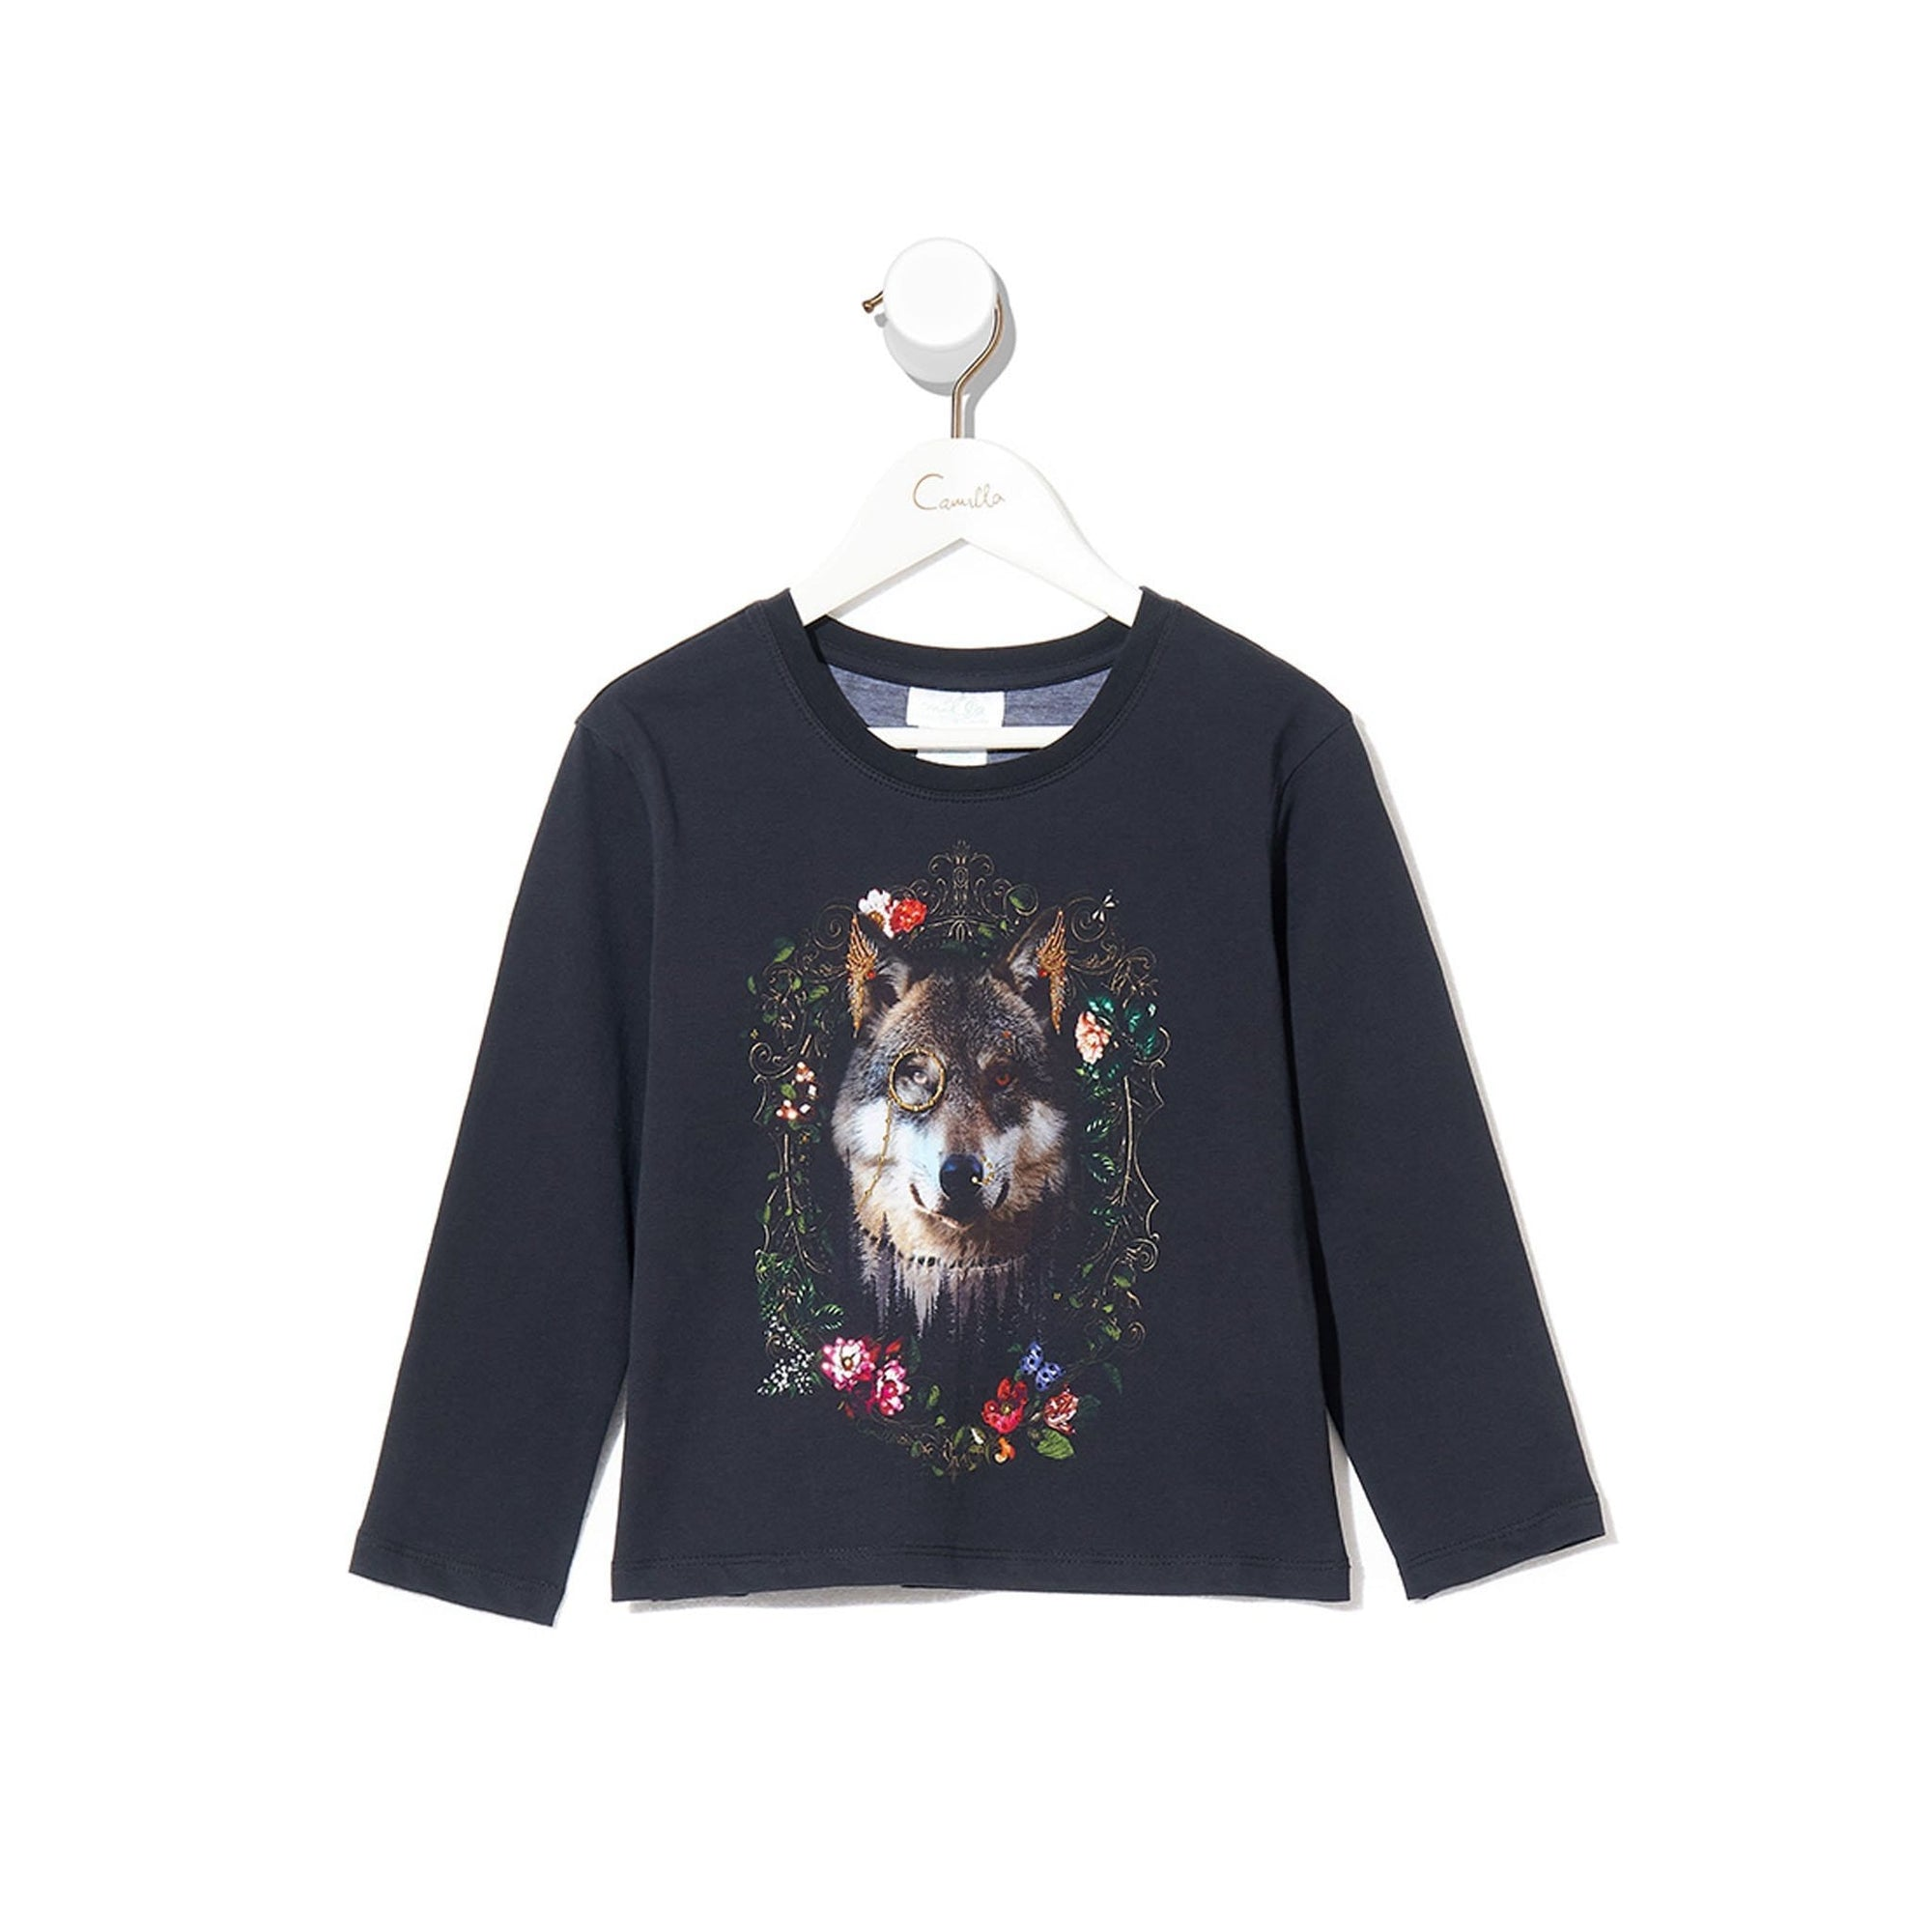 Camilla Nomadic Nymph Infants Long Sleeve Top